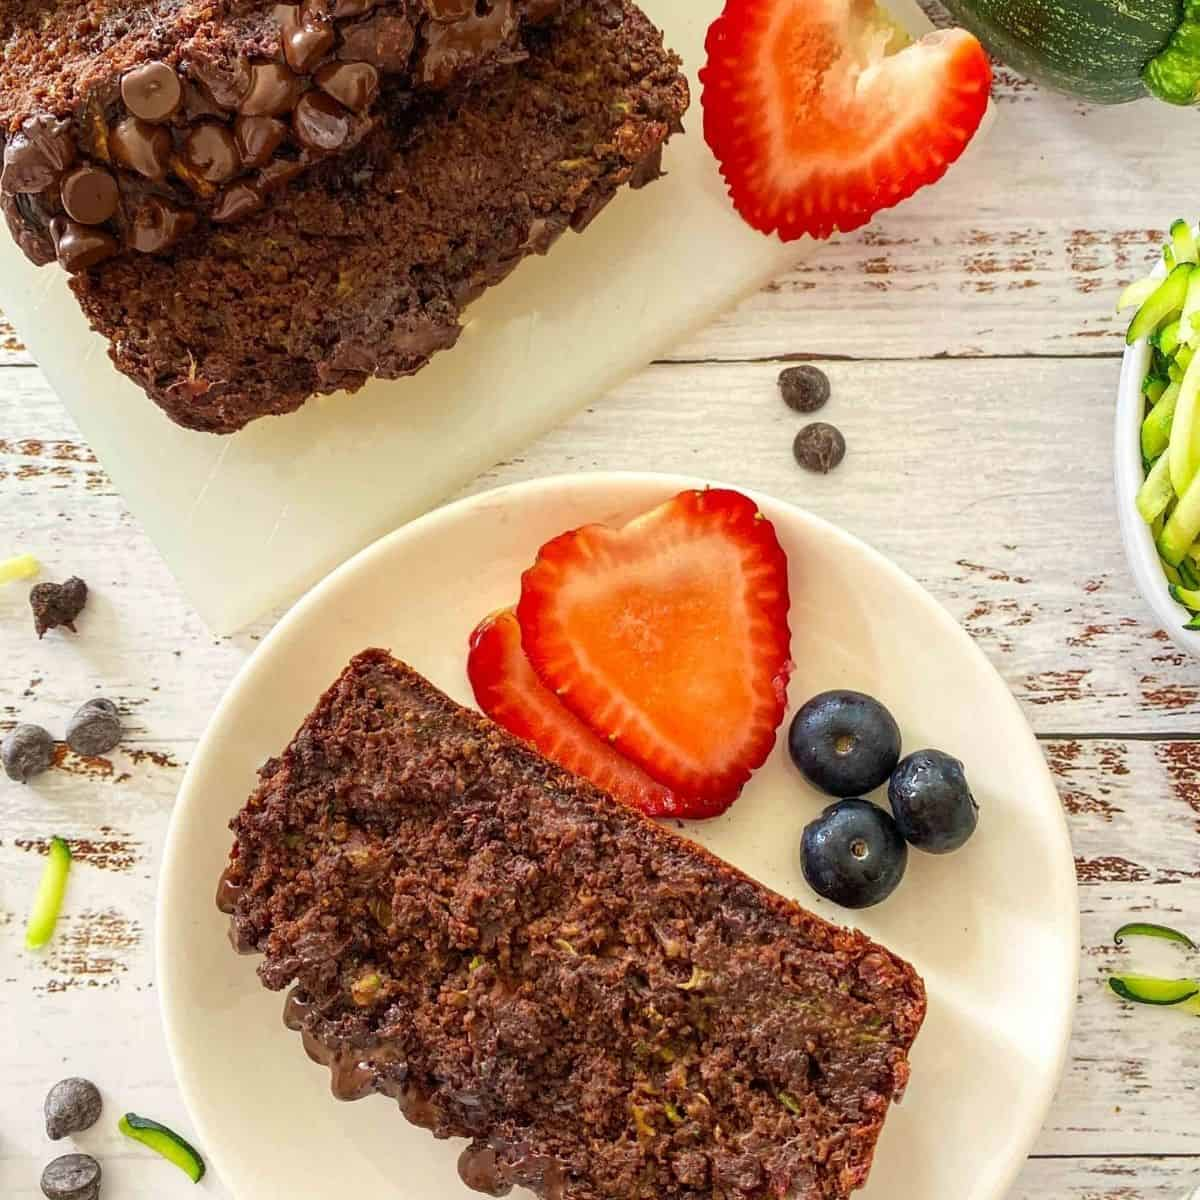 Slice of chocolate zucchini bread on white plate with strawberries and blueberries beside it.